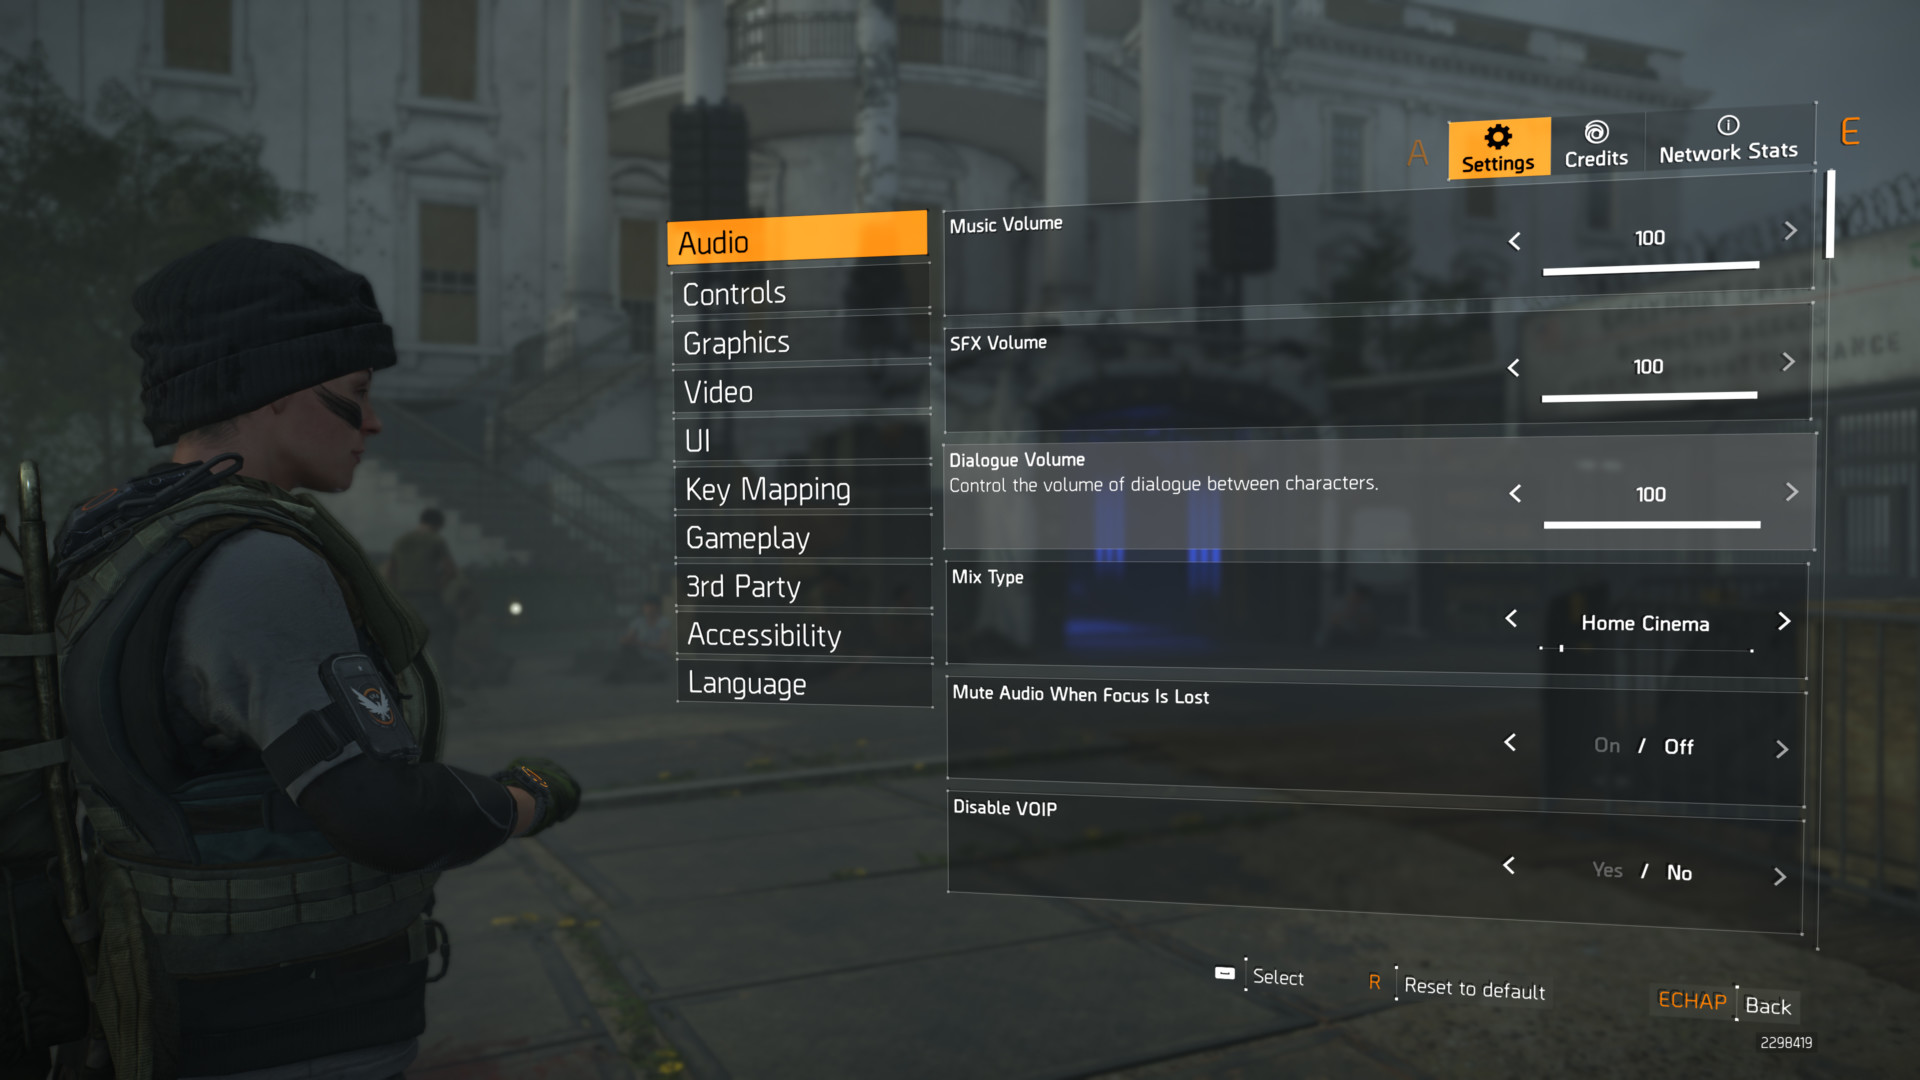 Audio screenshot of Tom Clancy's The Division 2 video game interface.